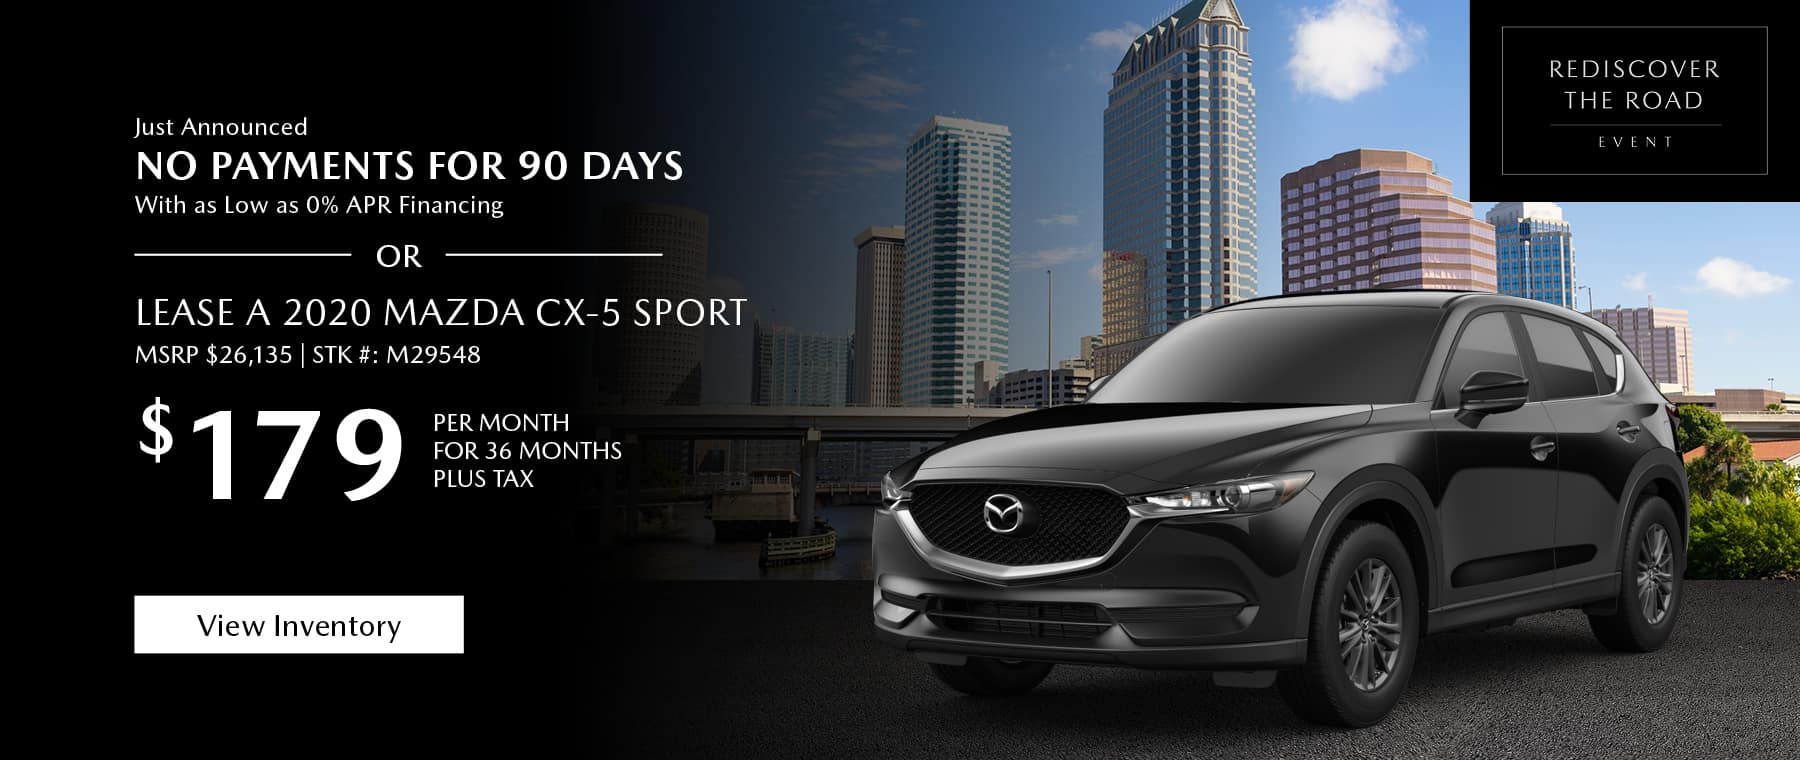 Just Announced, No payments for 90 days with as low as %0 APR financing, or lease the 2020 Mazda CX-5 for $179 per month, plus tax for 36 months. Click or tap here to view our inventory.